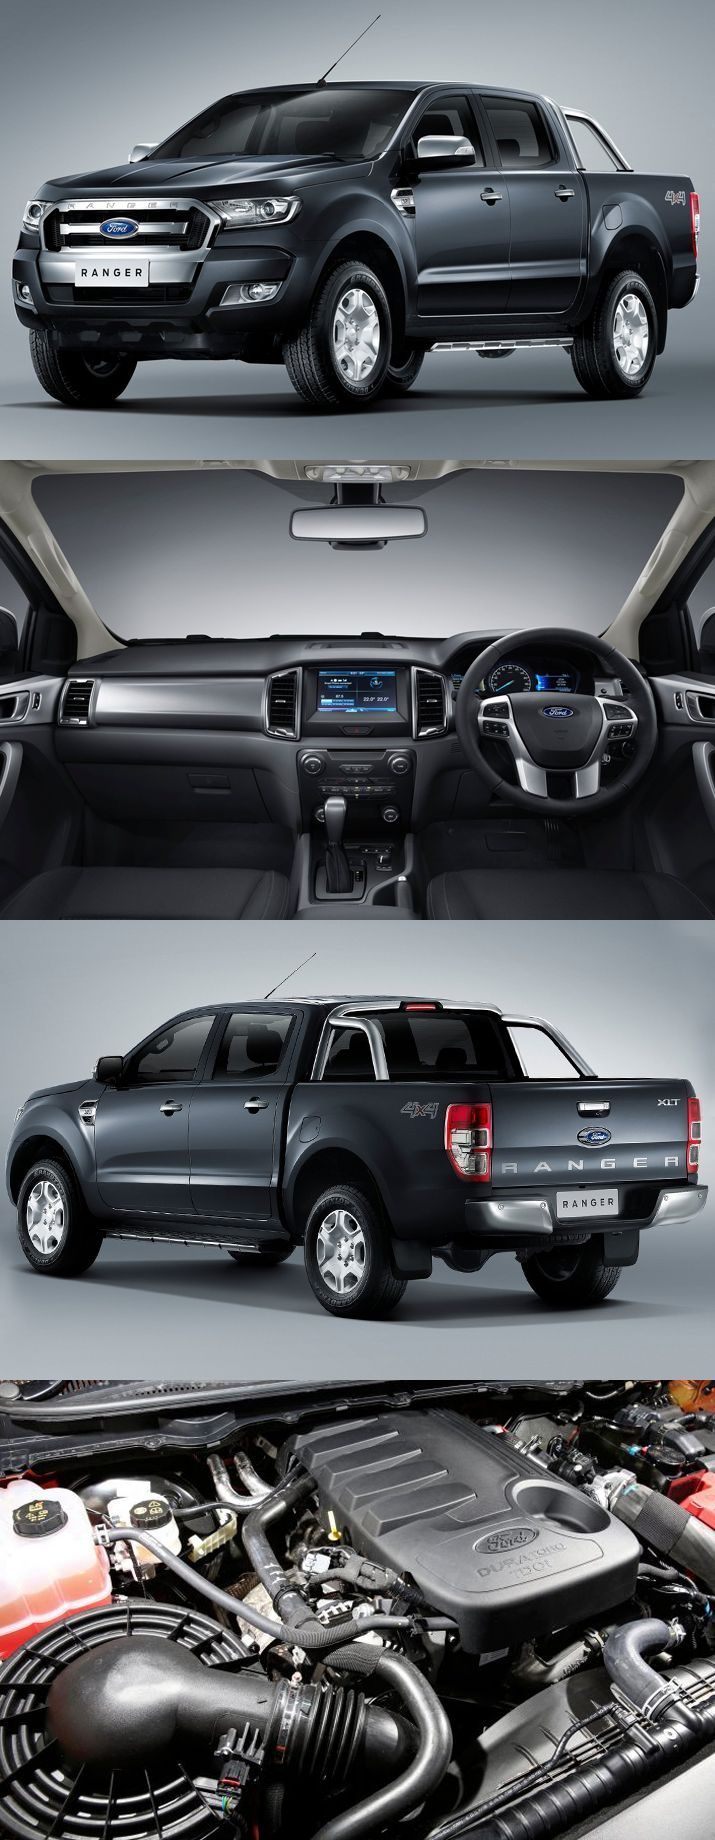 Category Ford >> 1609 Best Ford Images On Pinterest Car Ford Trucks And Cars